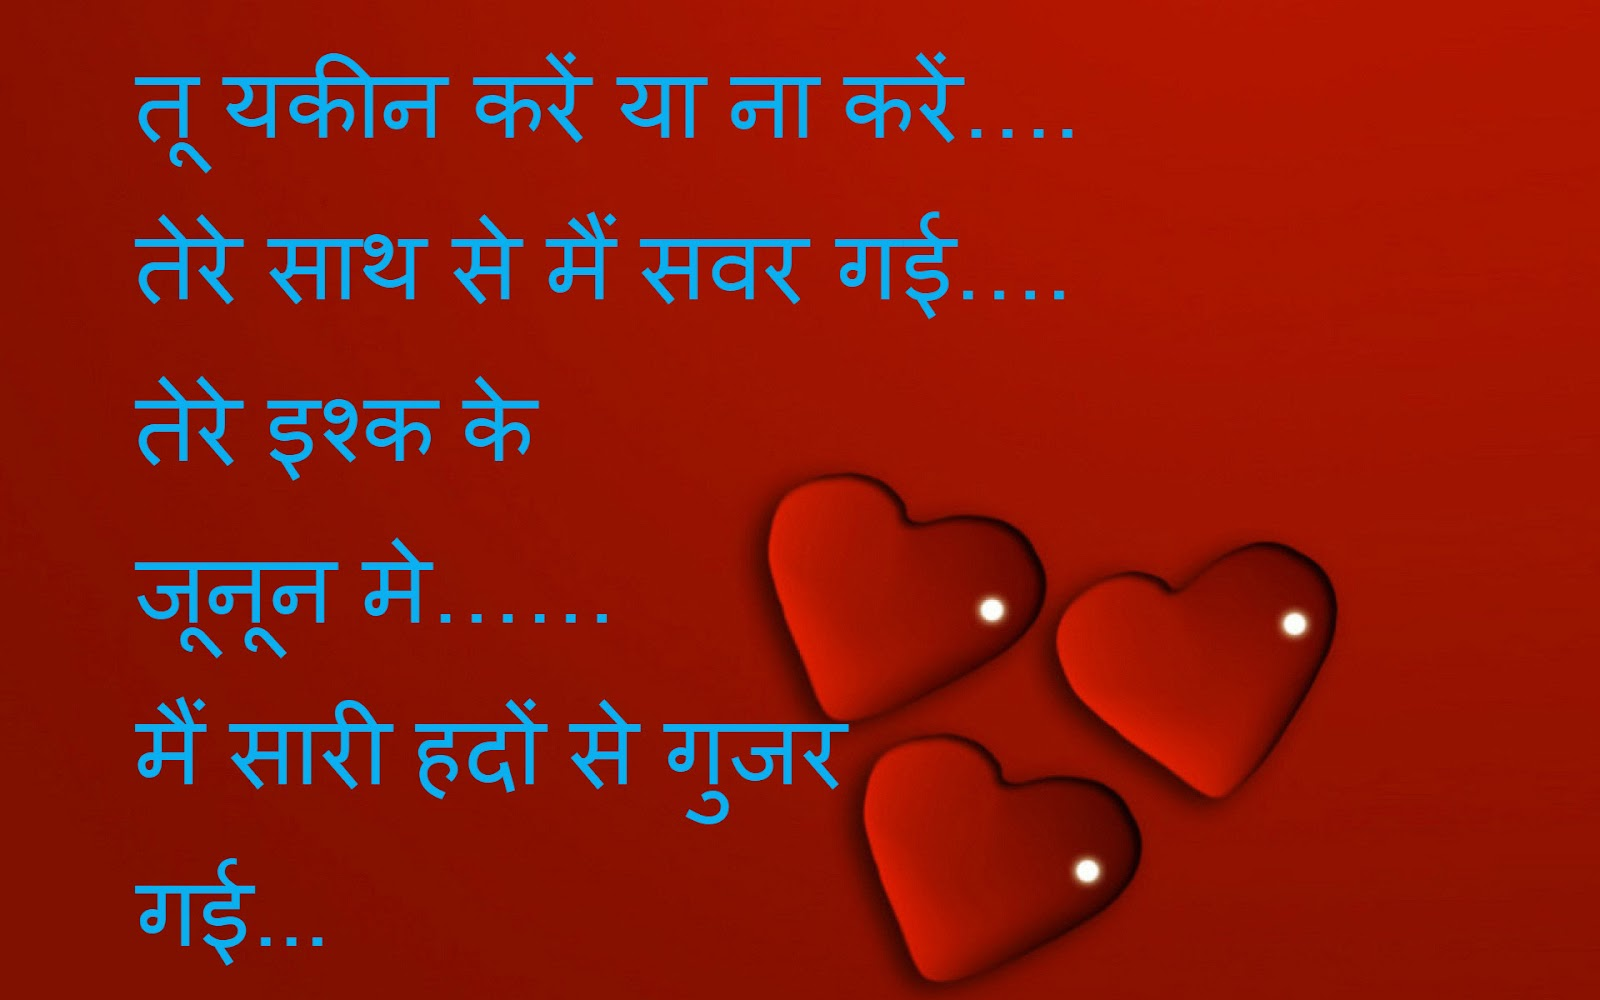 Wallpaper download love shayri - Love Hindi Shayari With Images Free Download Hindi Love Shayari For Boyfriend Facebook Hd Pic Hindi Sad Shayari Hindi Love Shayari For Girlfriend Hindi Love